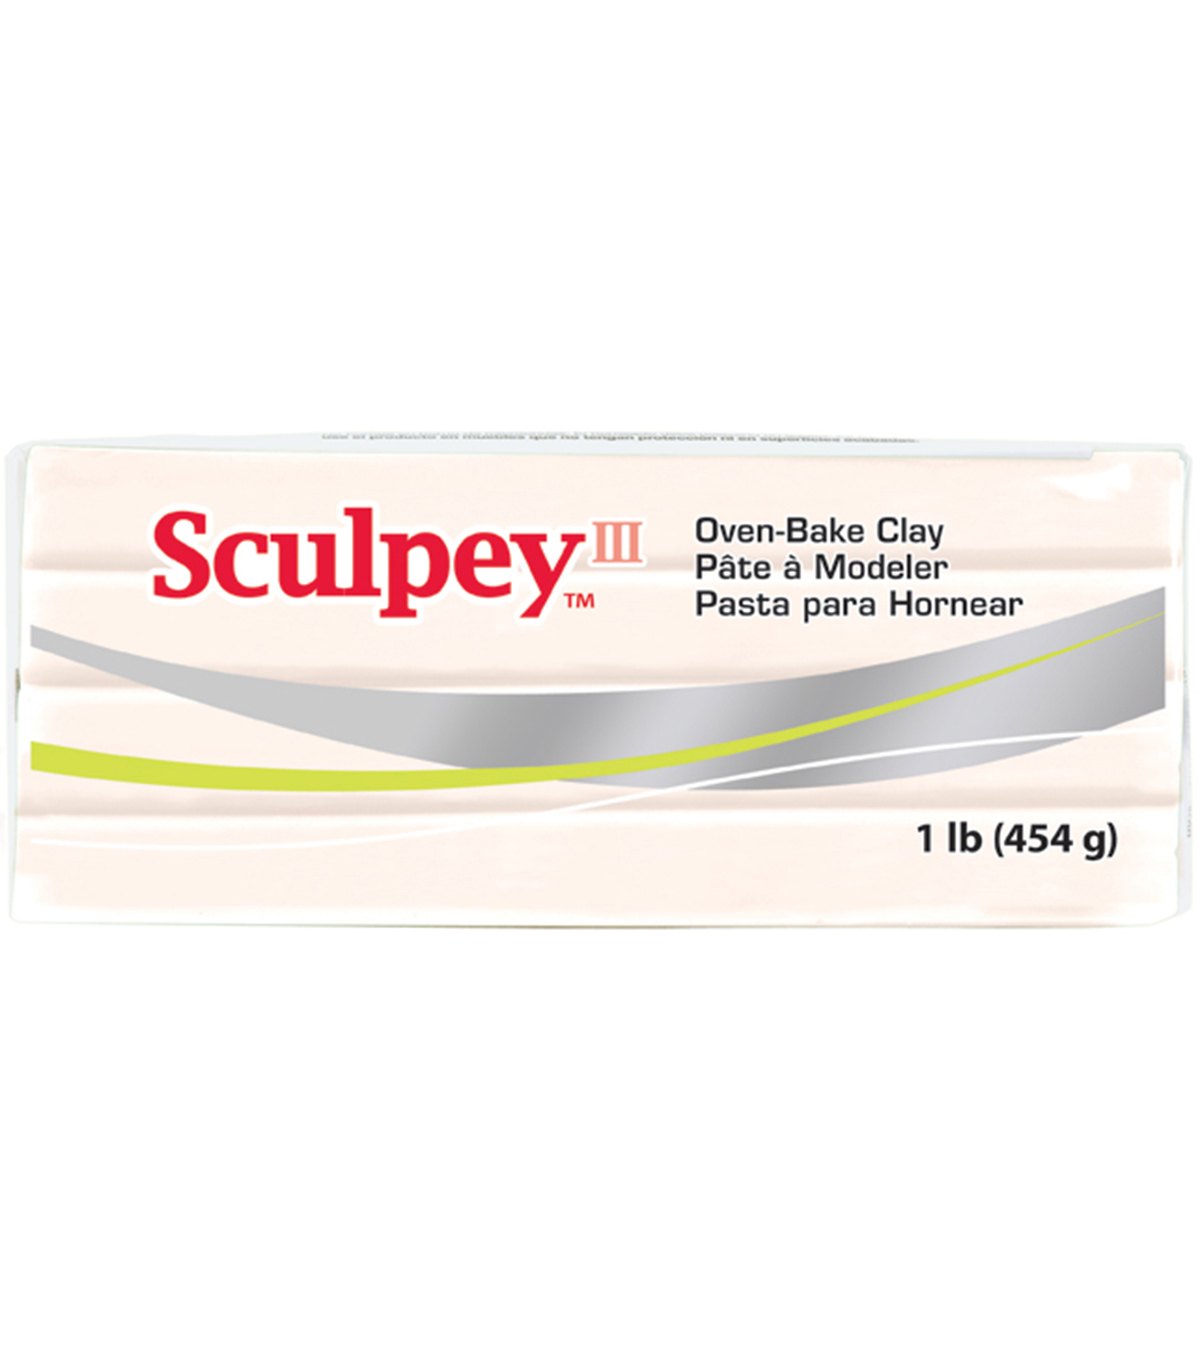 Sculpey III One Pound Packages, Beige